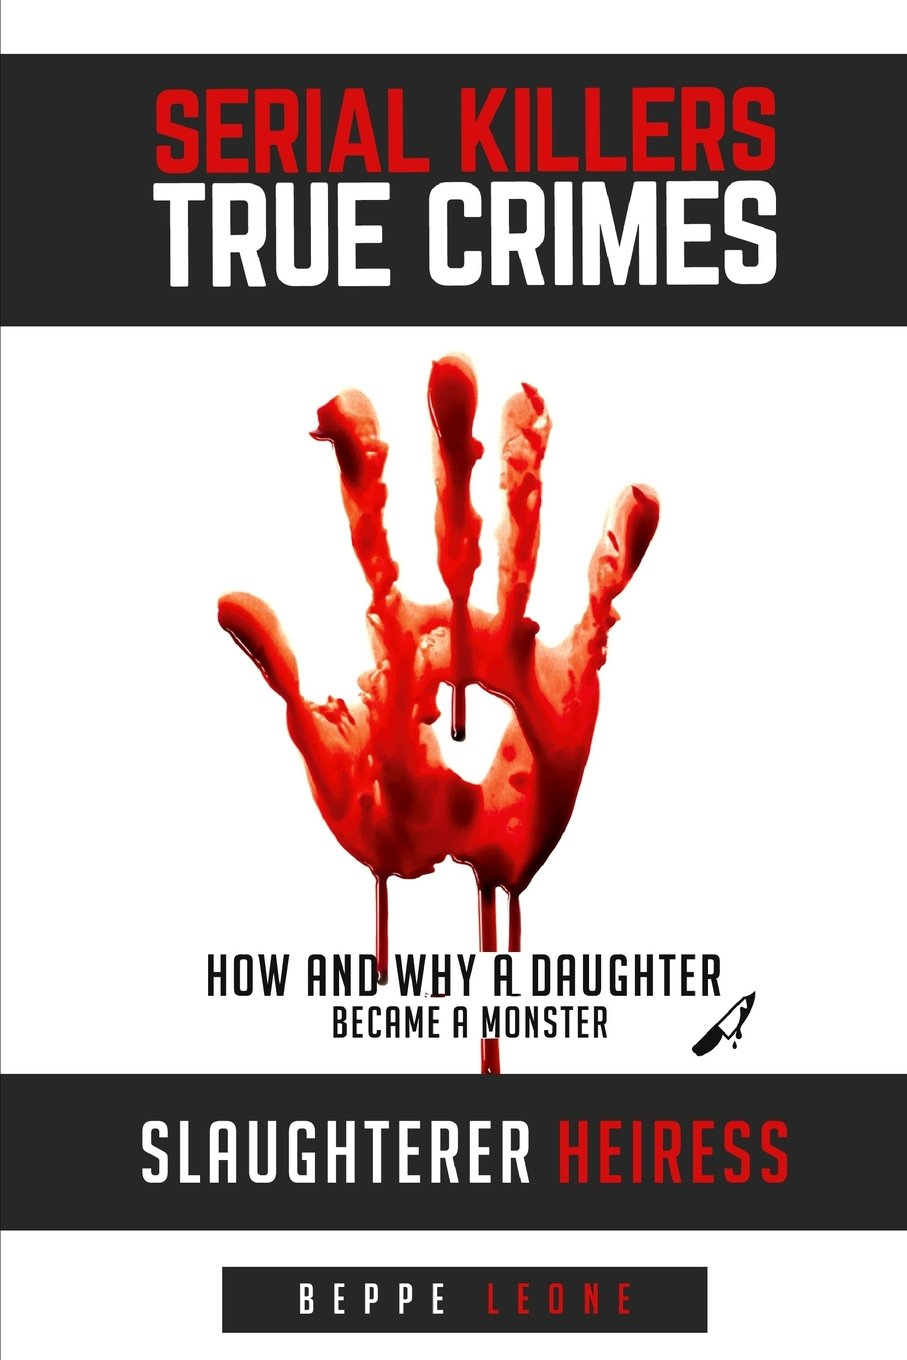 Serial Killers True Crime 2017: Slaughterer heiress: How and why a daughter became a monster